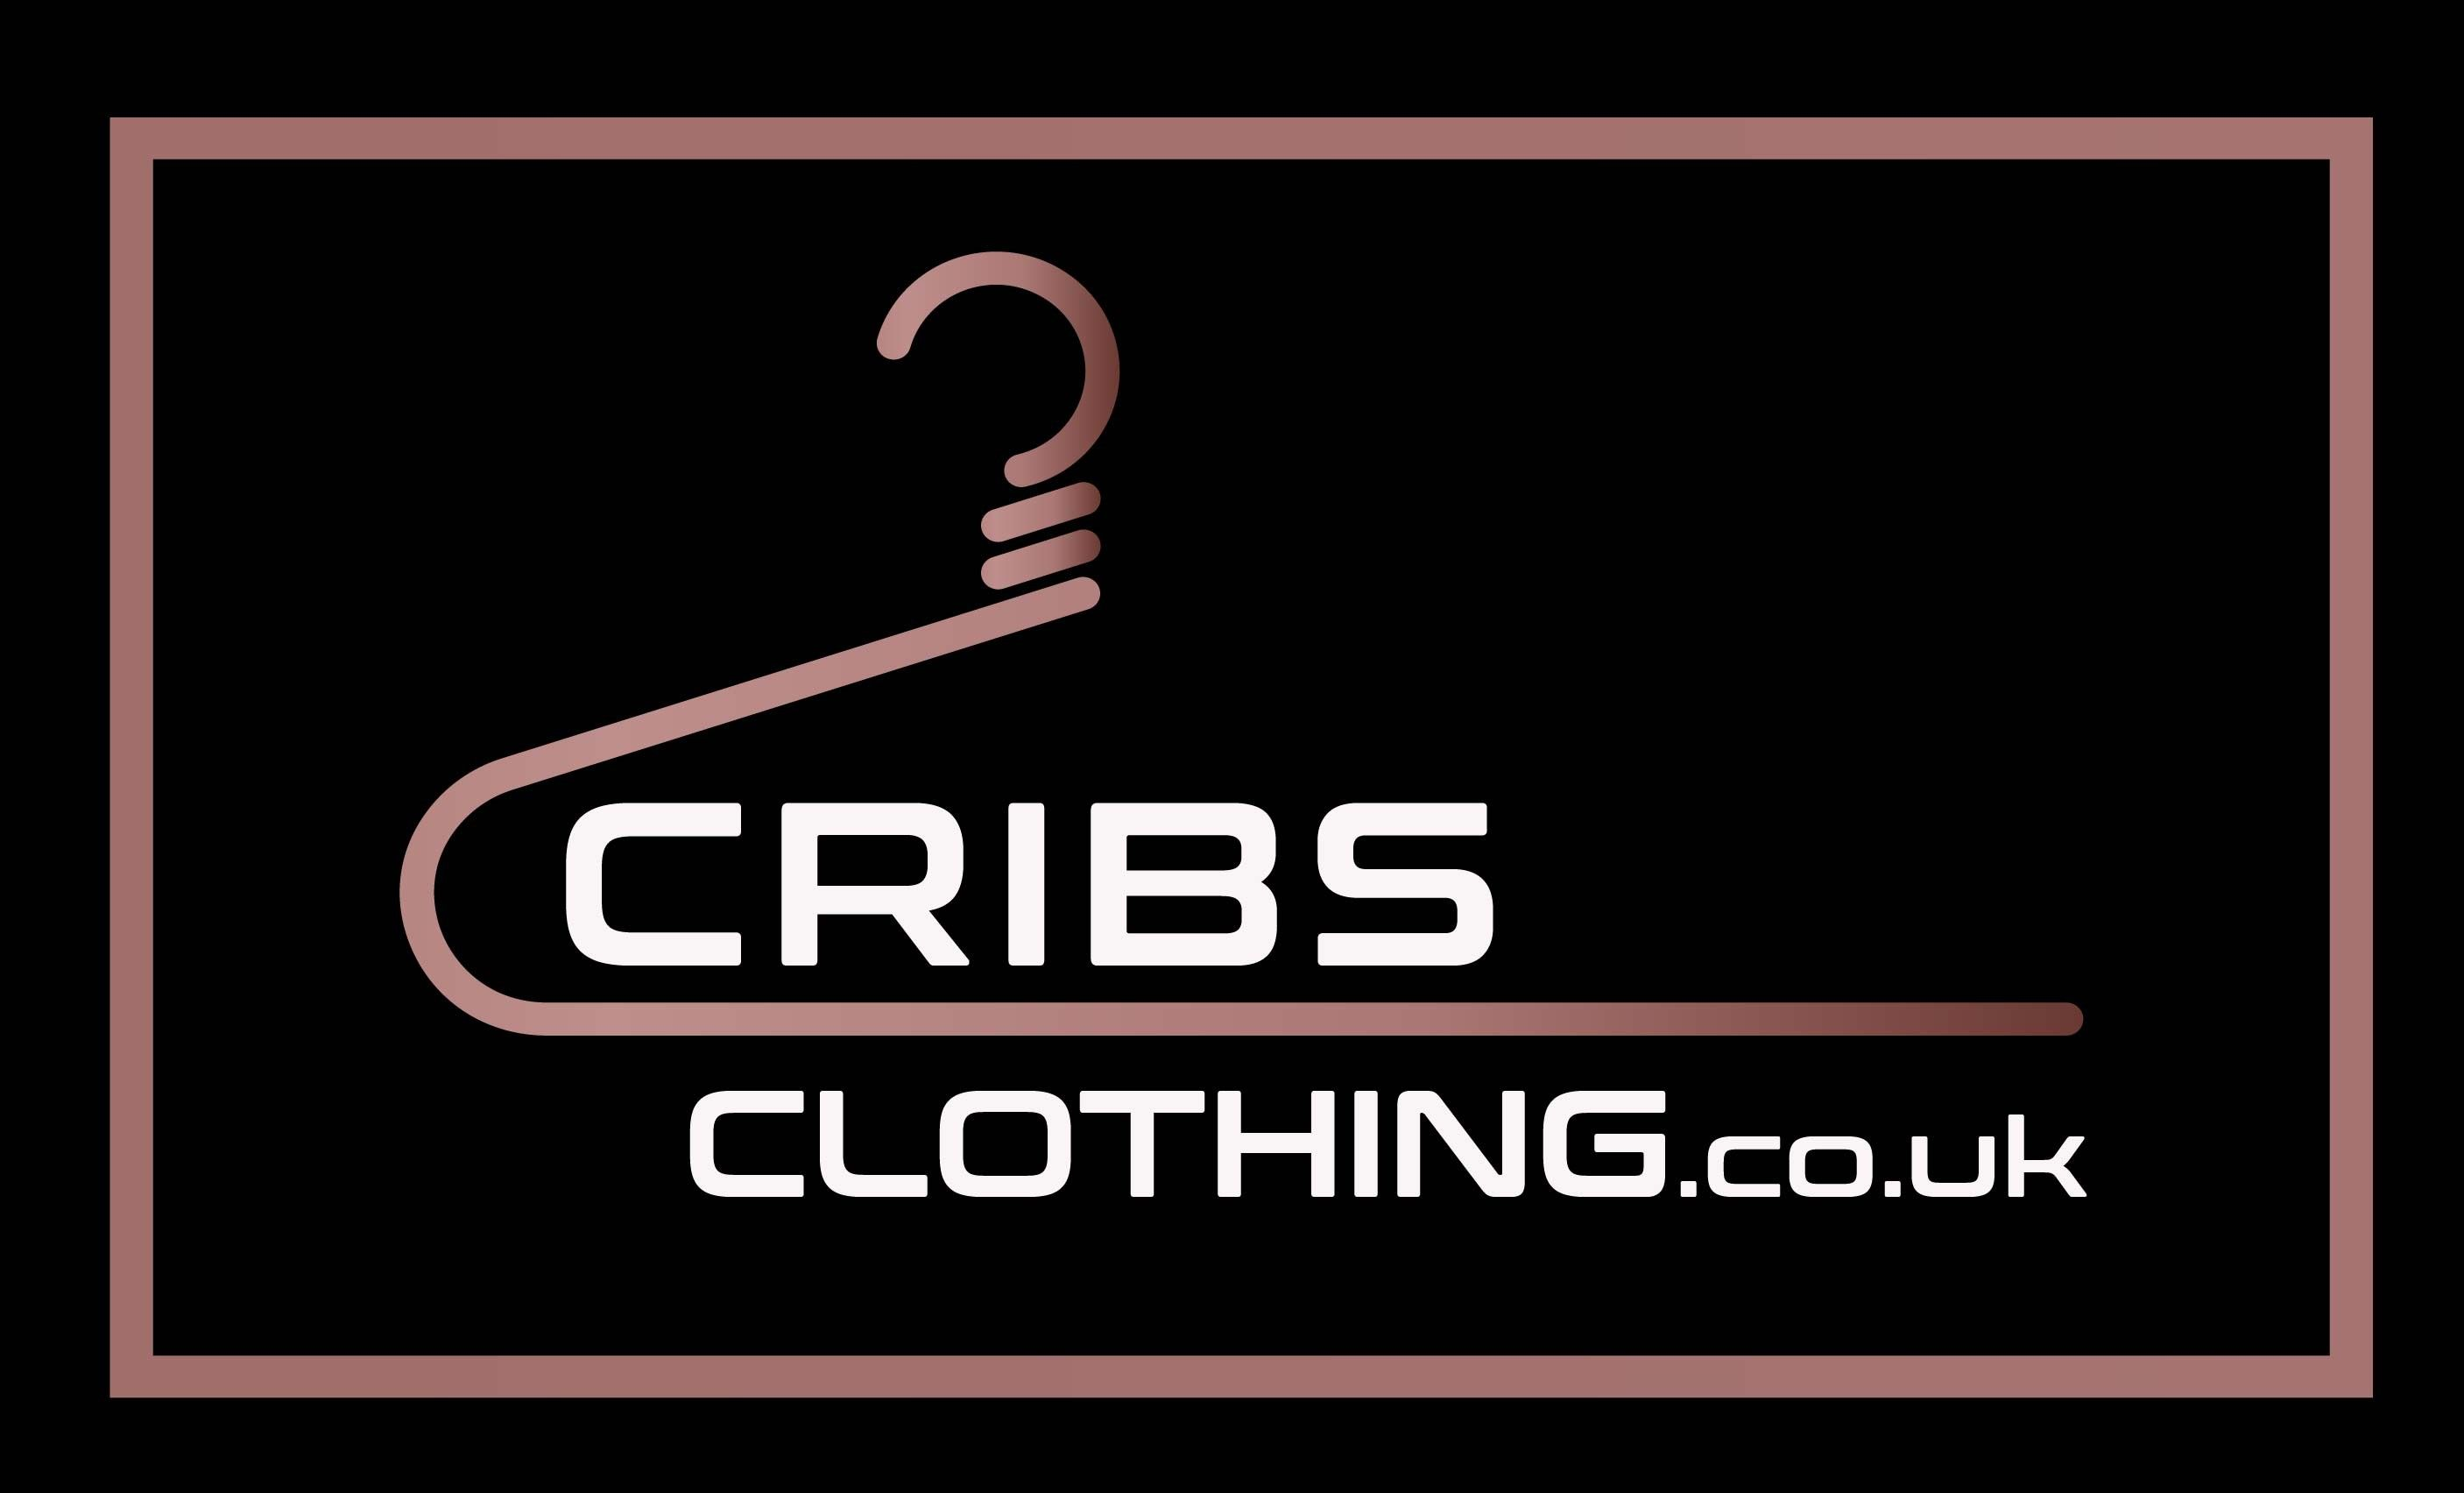 Cribs Clothing